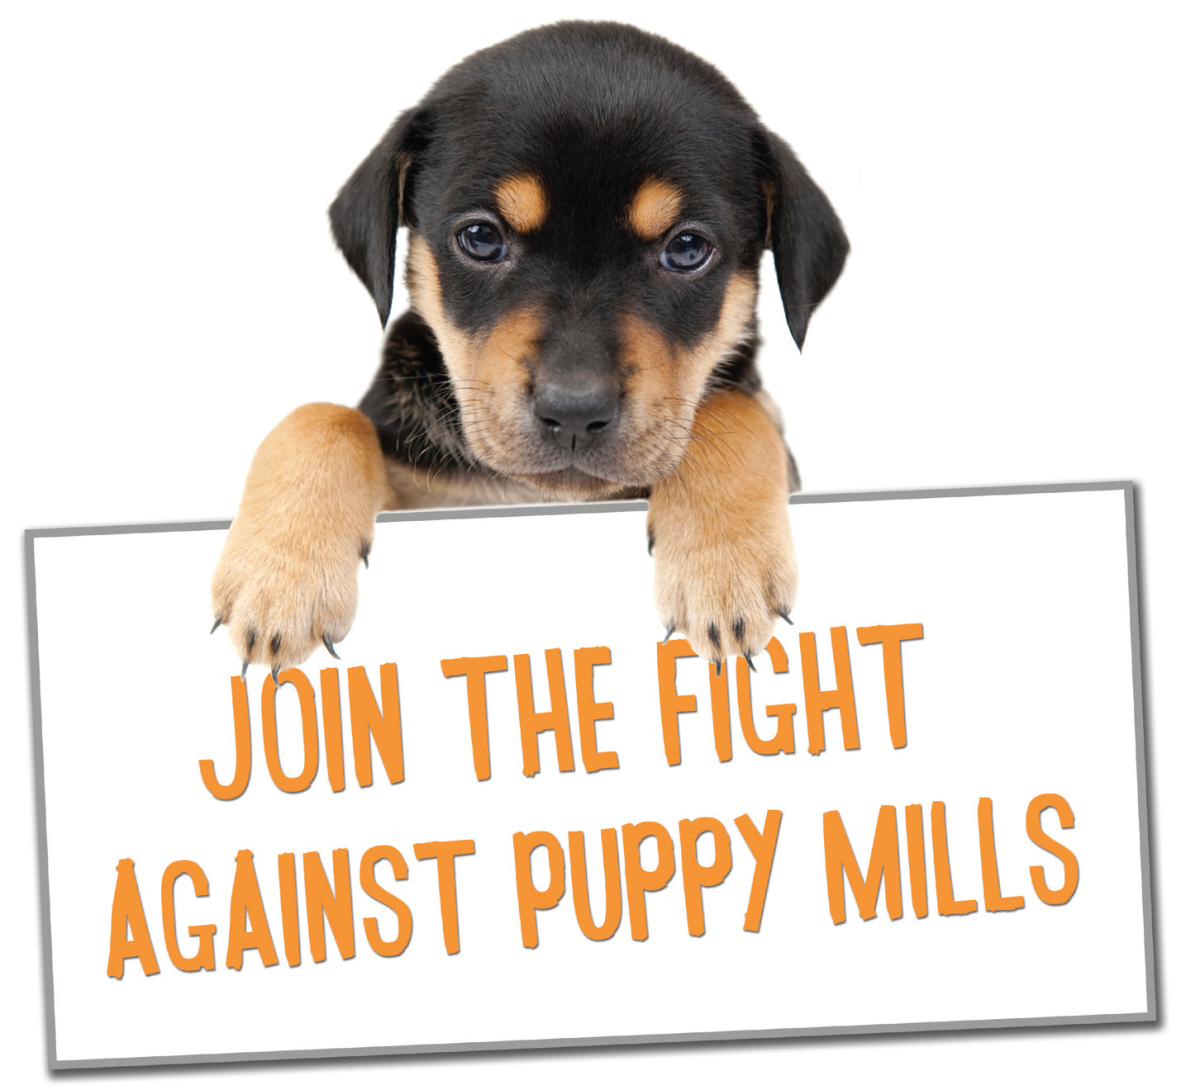 What you can do about puppymills